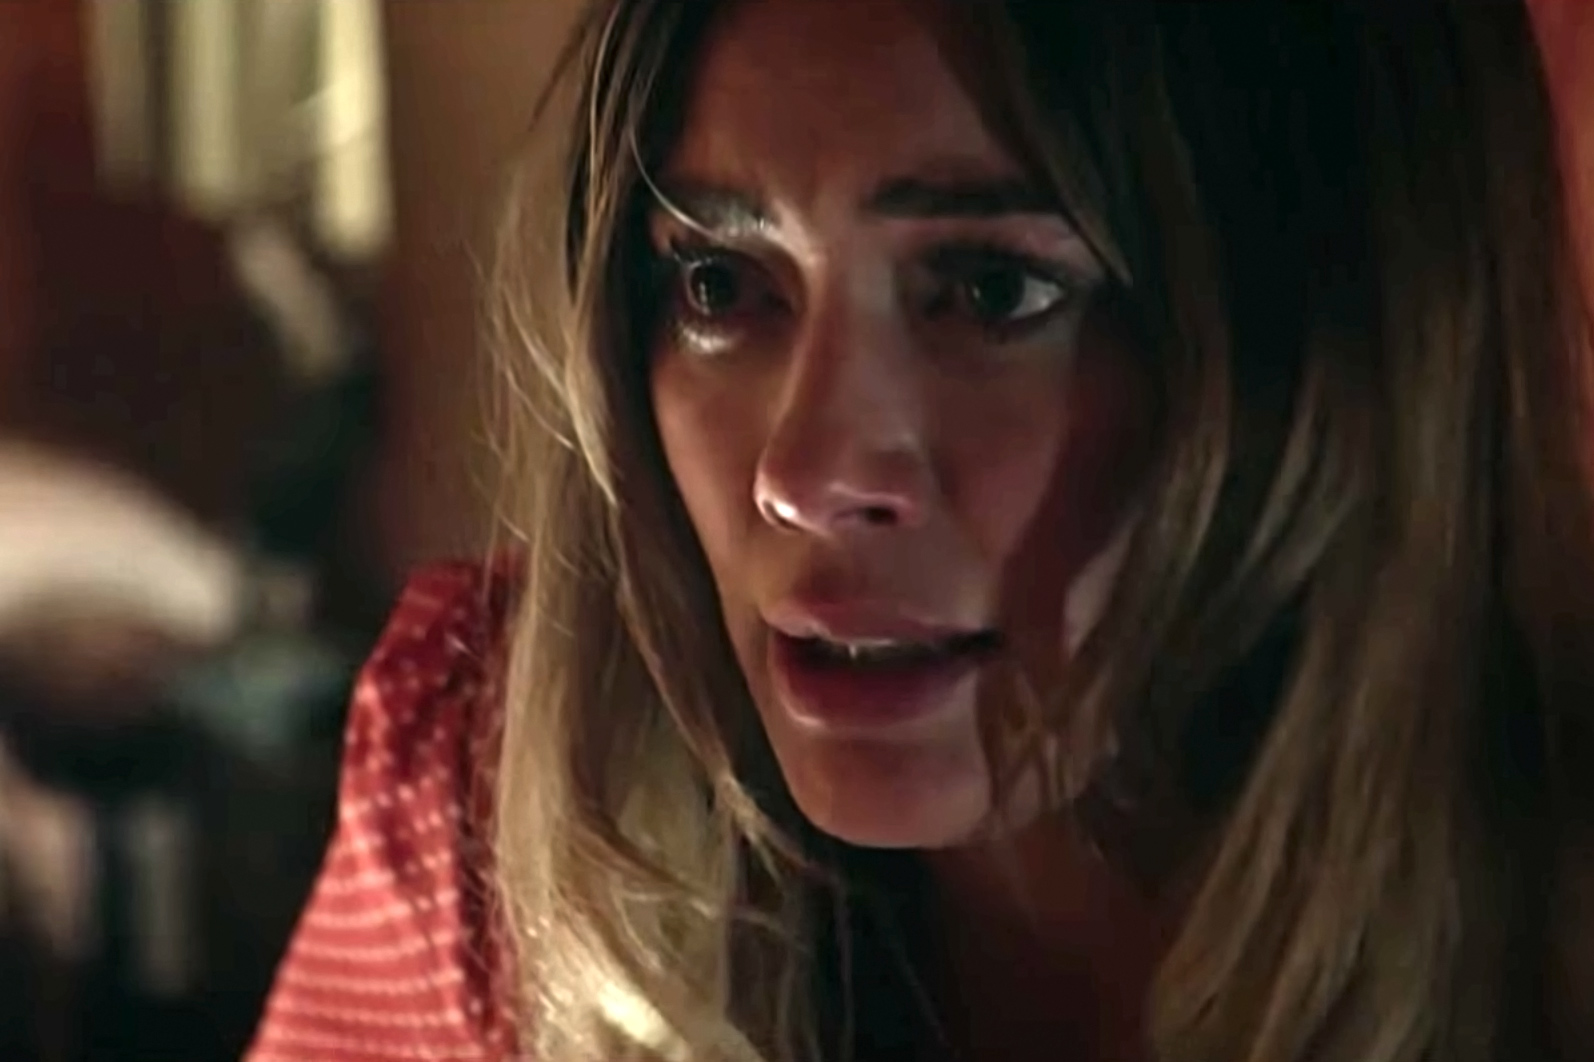 See Hilary Duff's Creepy Visions in 'Haunting of Sharon Tate' Trailer – Rolling Stone